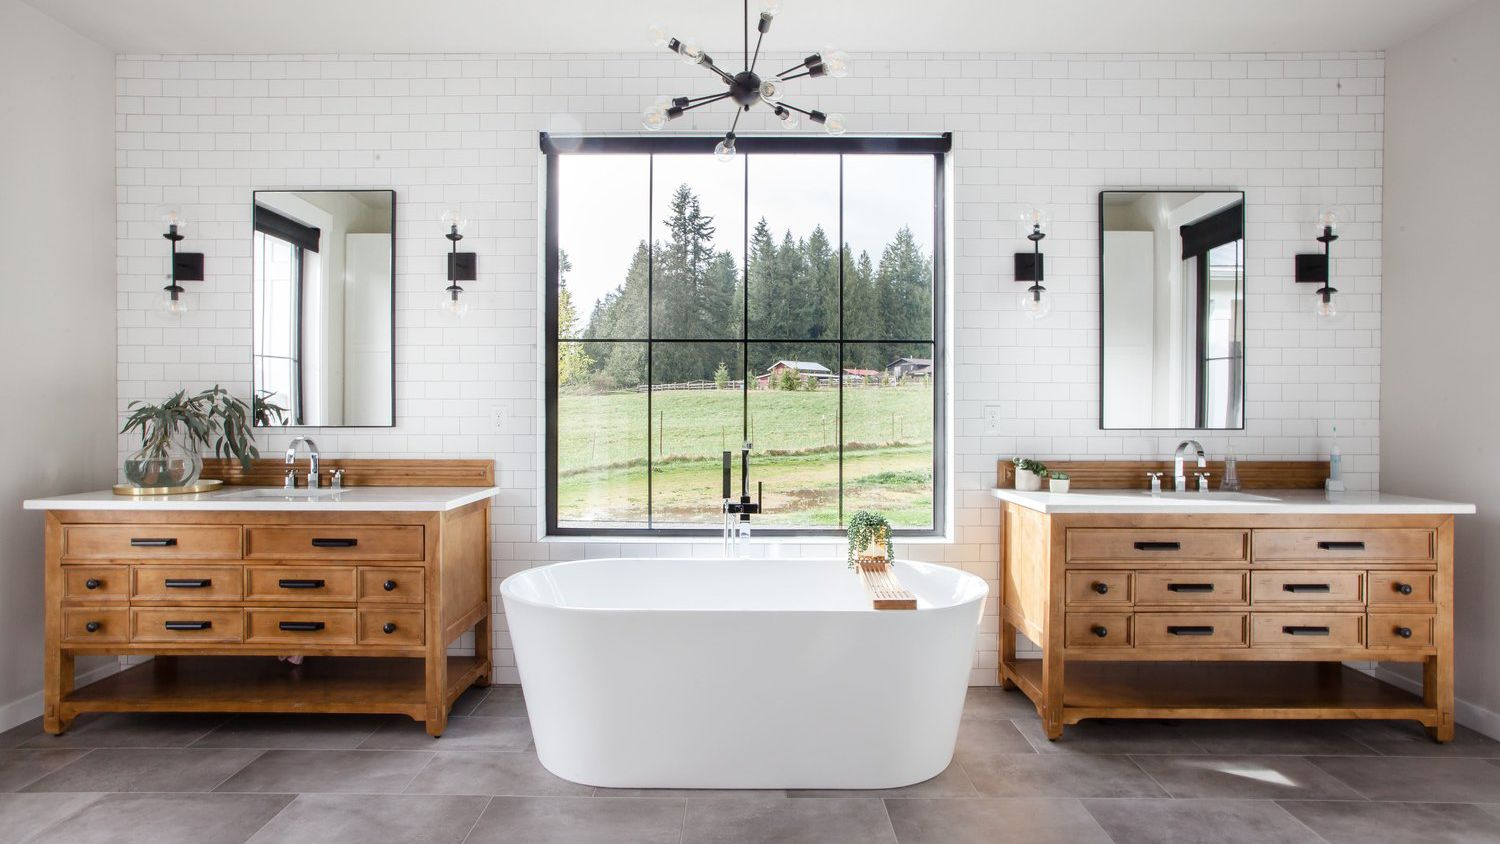 How Much It Costs To Add A Bathroom, How Much To Build A Bathroom